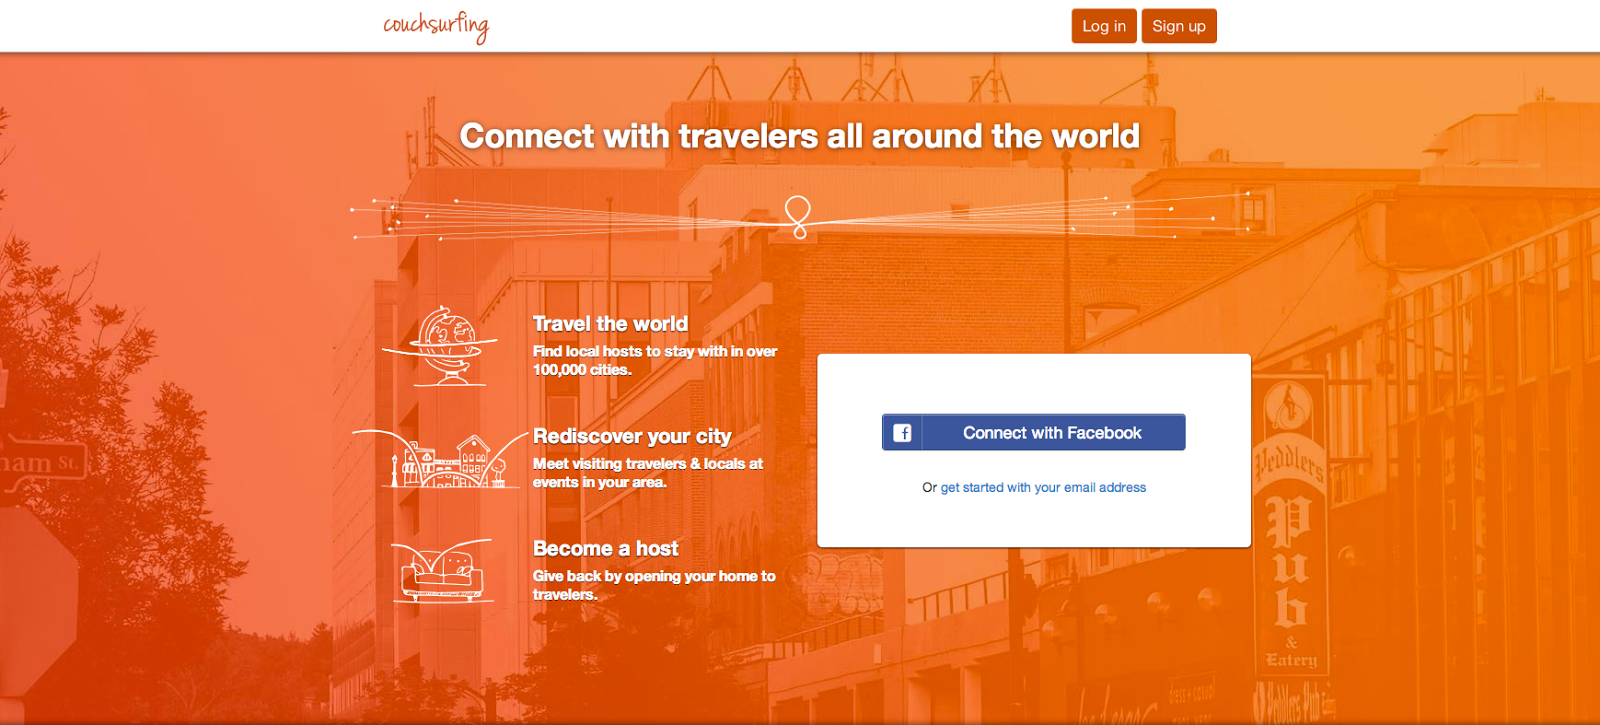 What is couchsurfing